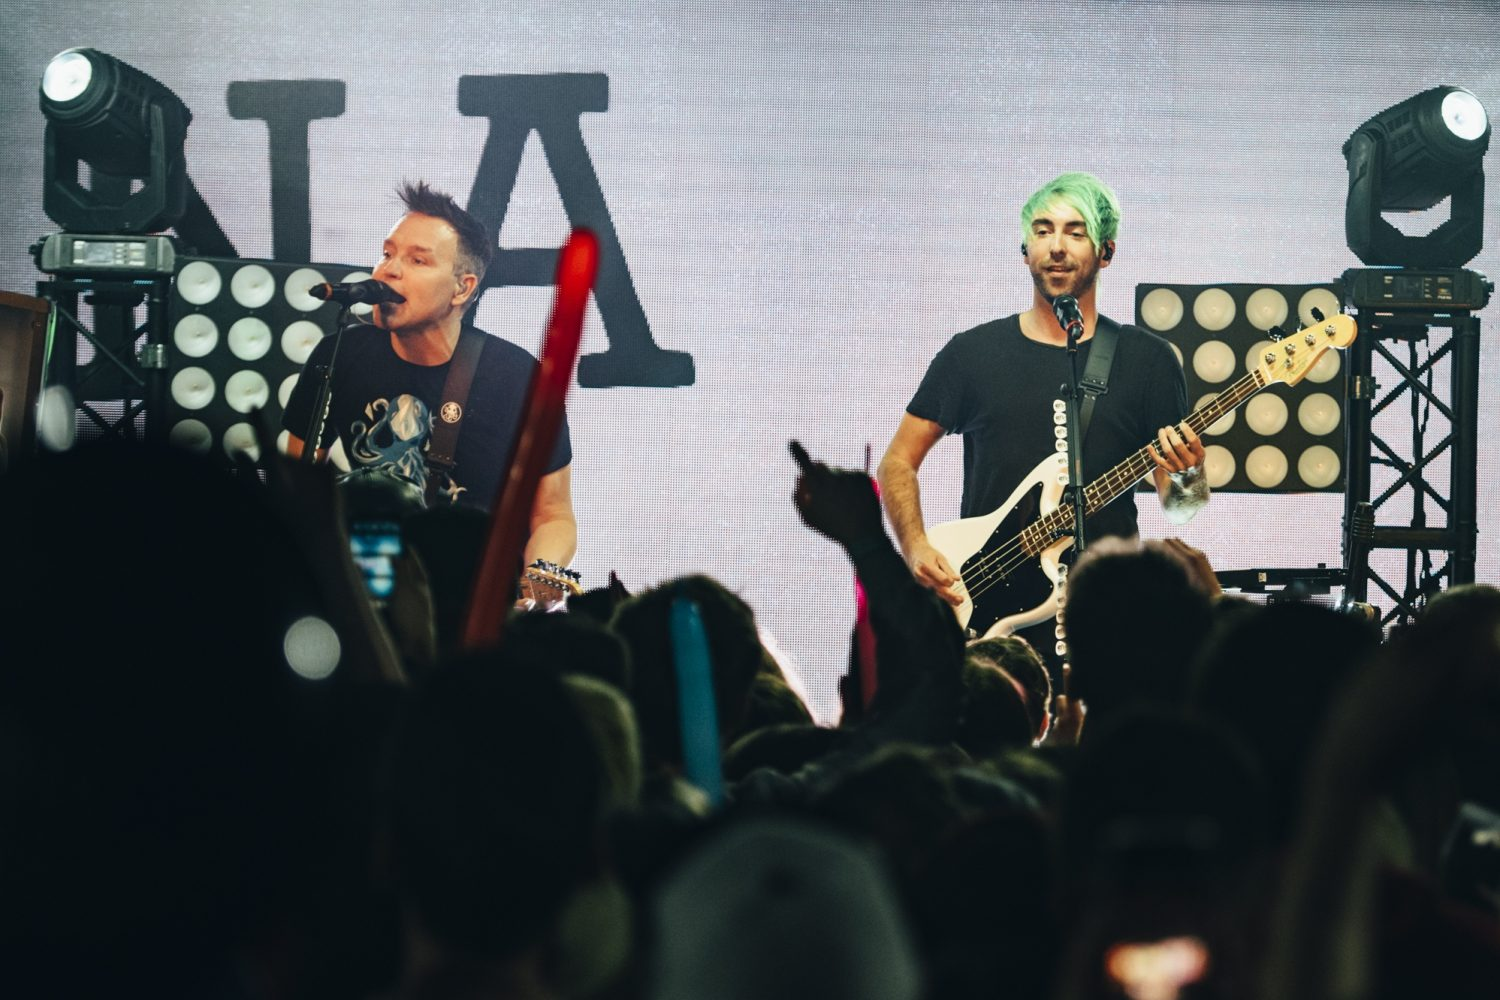 Check out a brand new track from Mark Hoppus and Alex Gaskarth's Simple Creatures, 'Special'